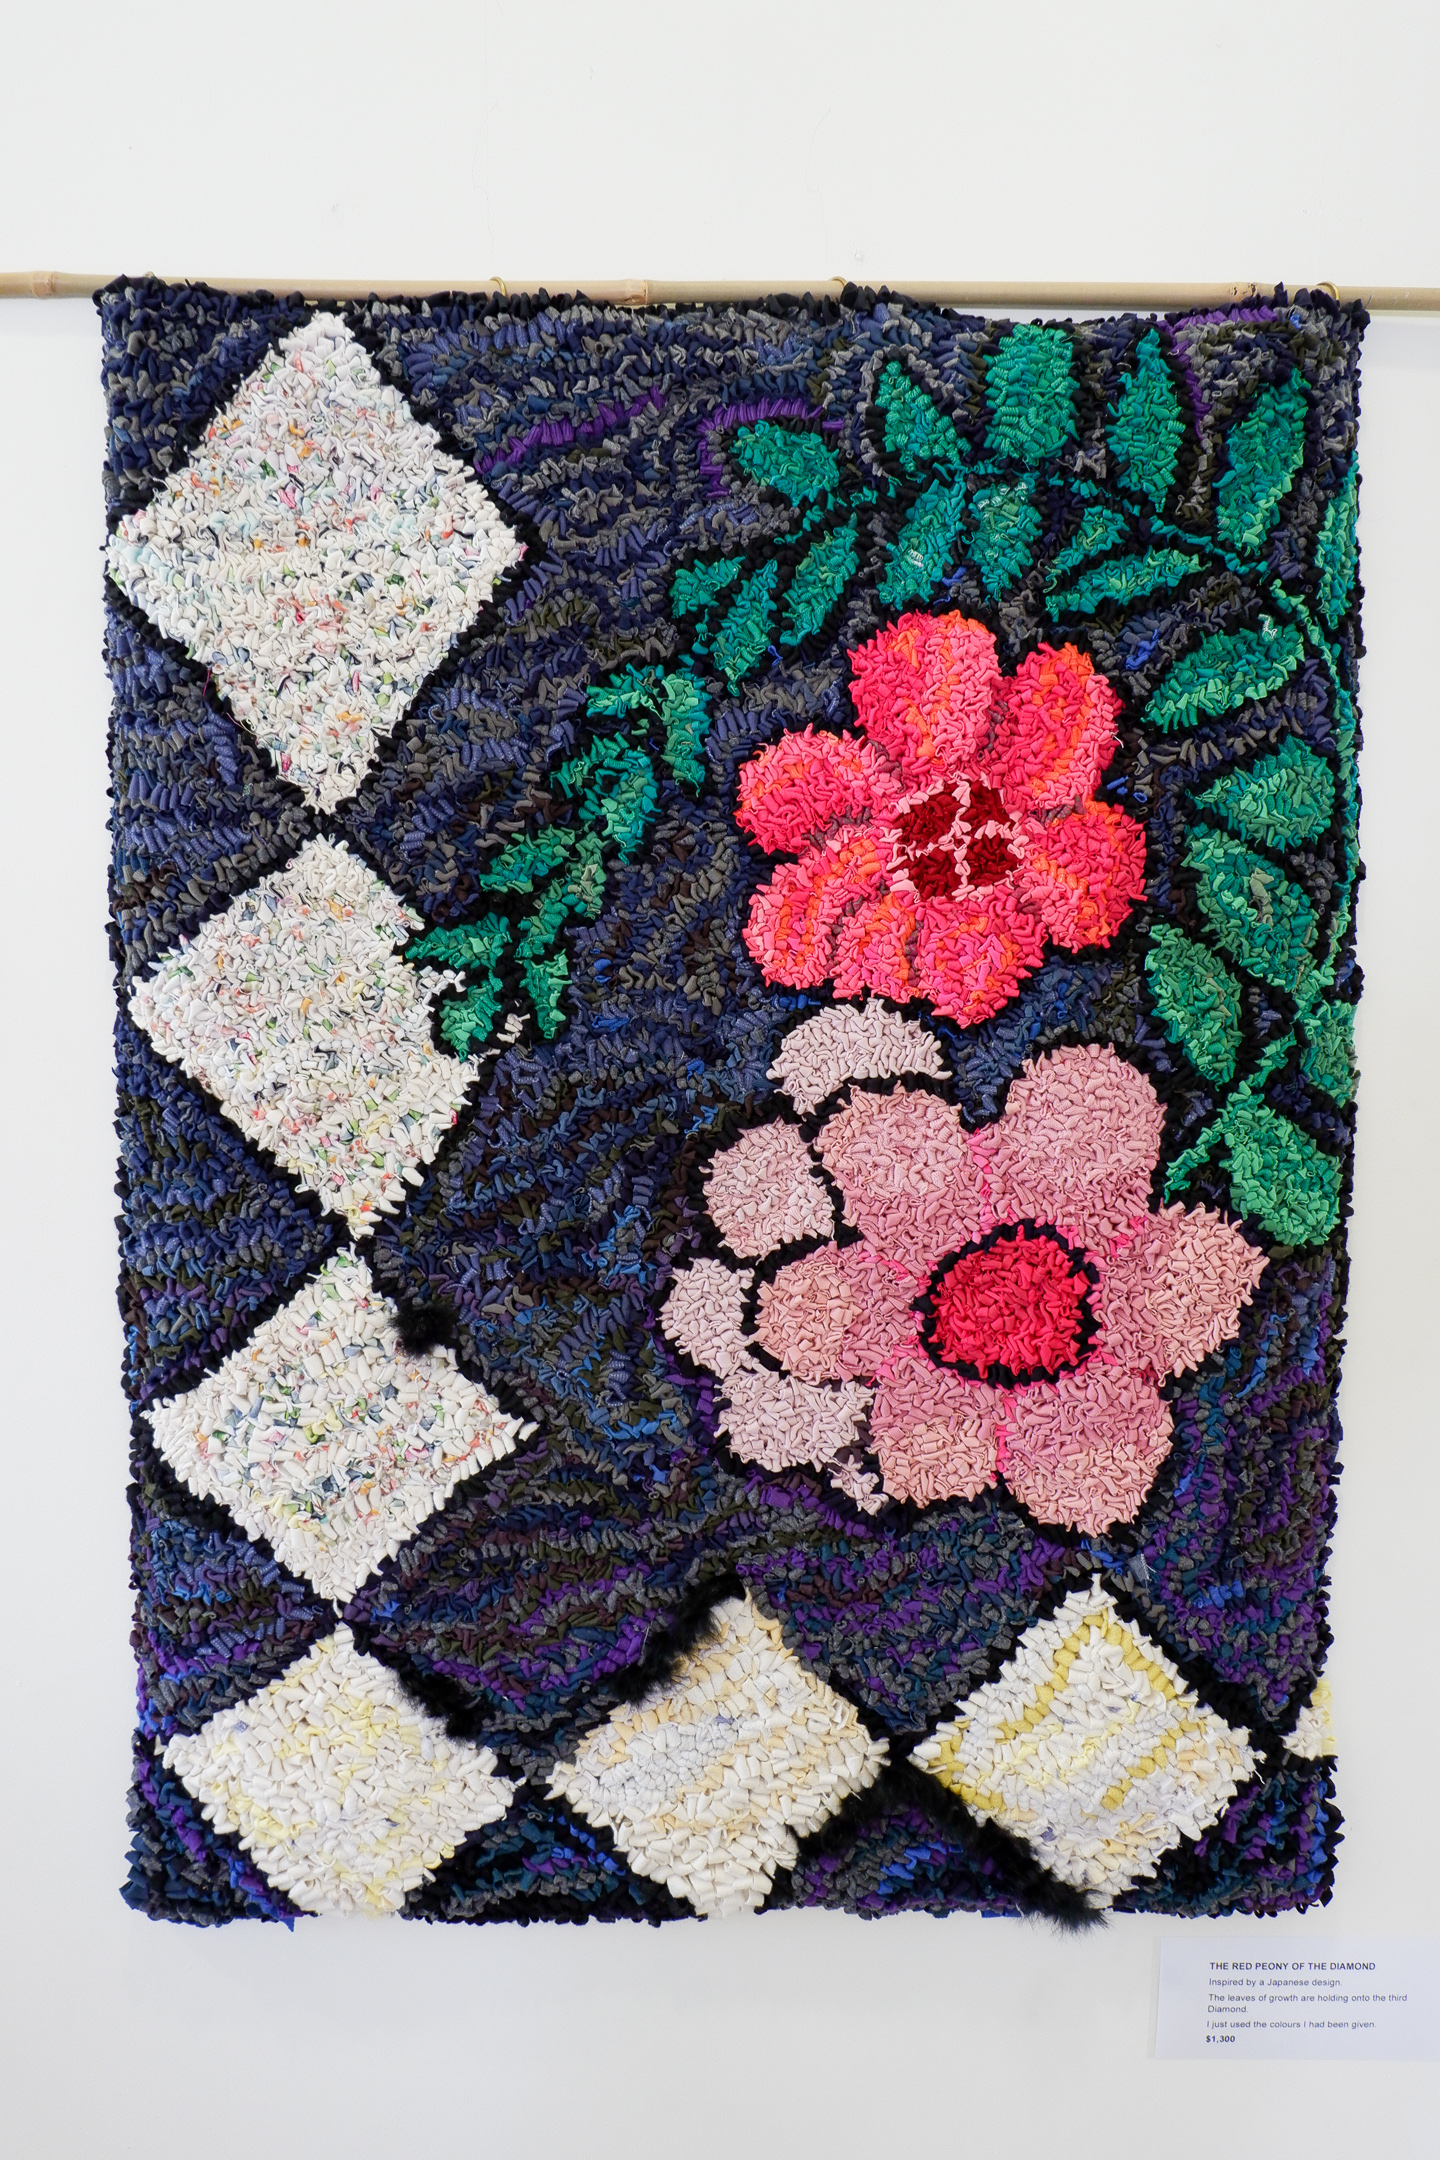 Unique Rag Rug Exhibition by Helen Brook and family